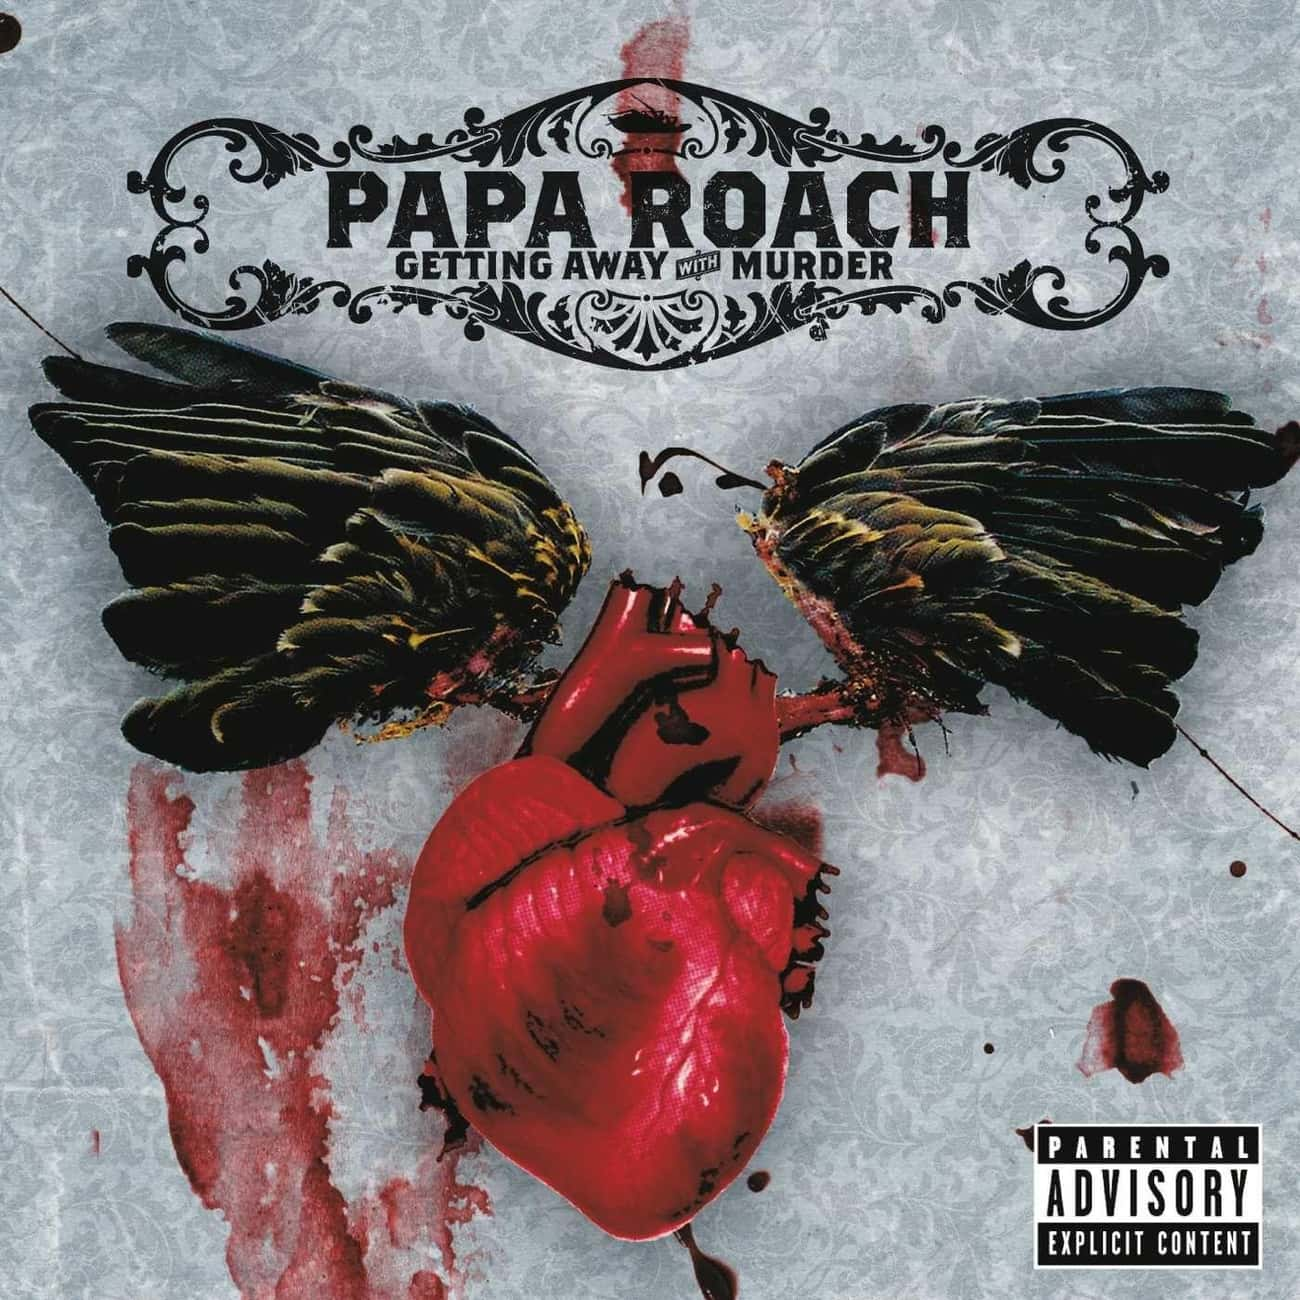 Getting Away With Murder is listed (or ranked) 2 on the list The Best Papa Roach Albums of All Time